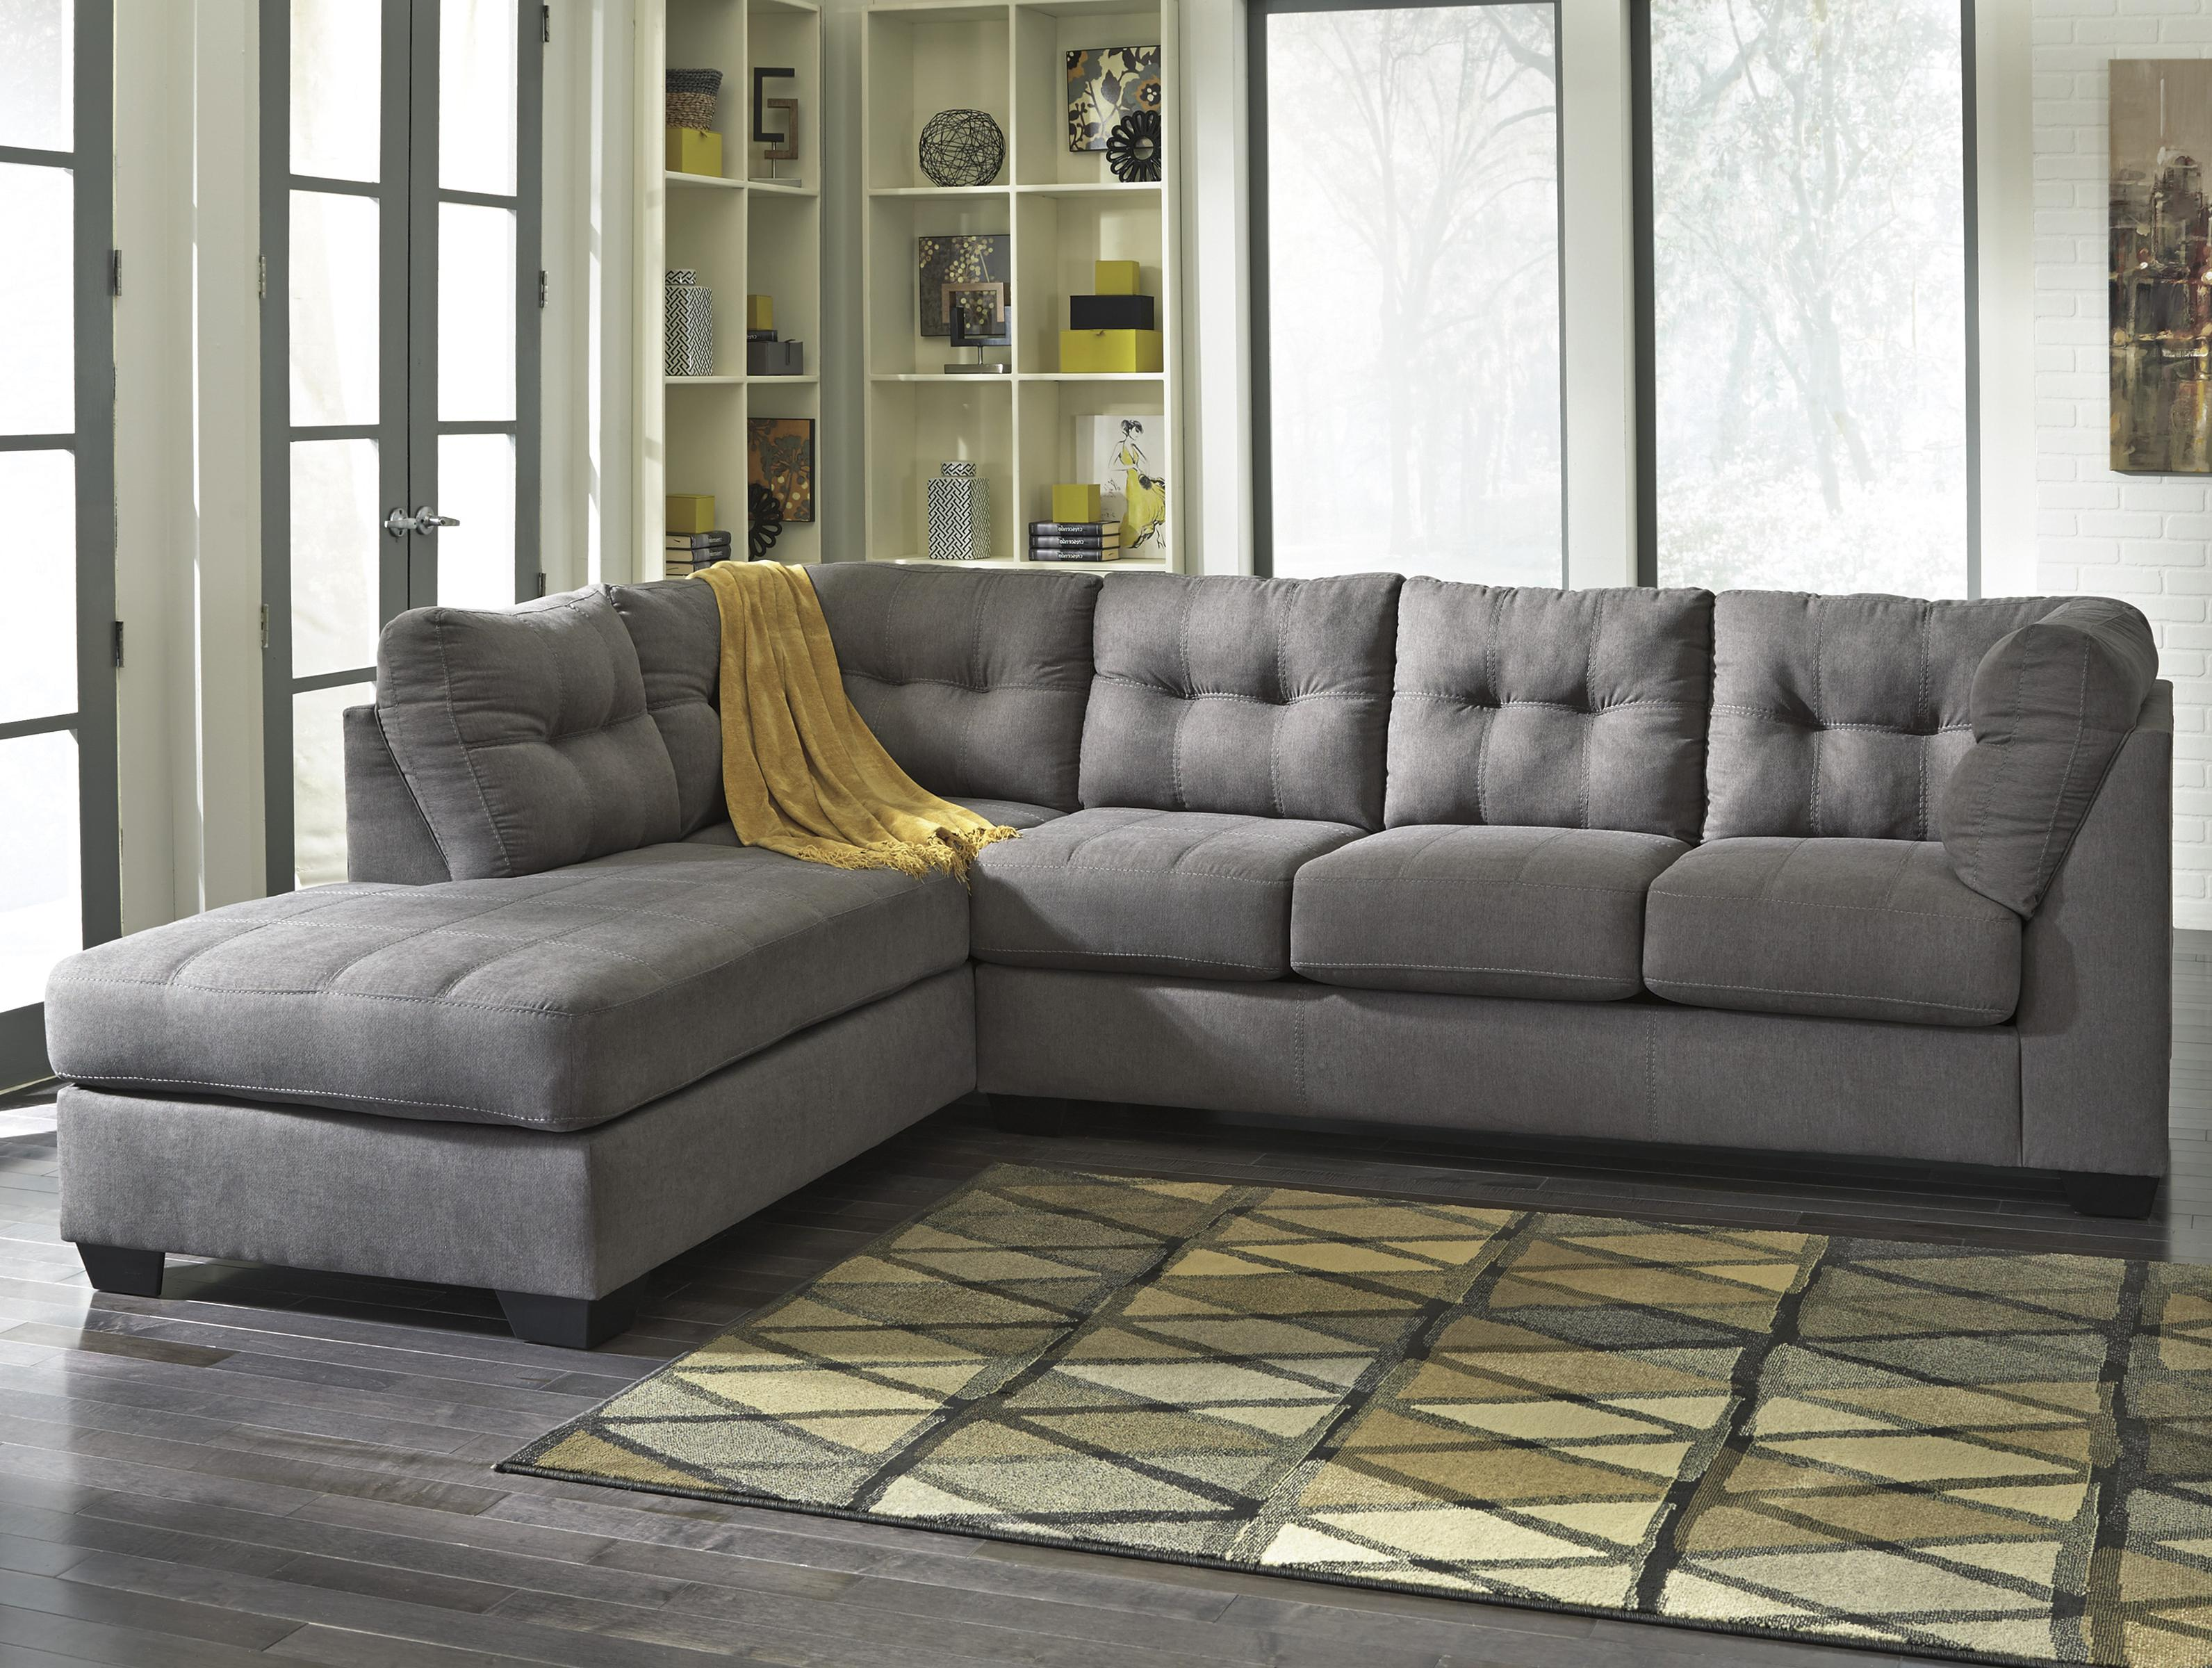 Couches Sleeper Maier Charcoal 2 Piece Sectional W Sleeper Sofa Left Chaise By Benchcraft At Sam Levitz Furniture